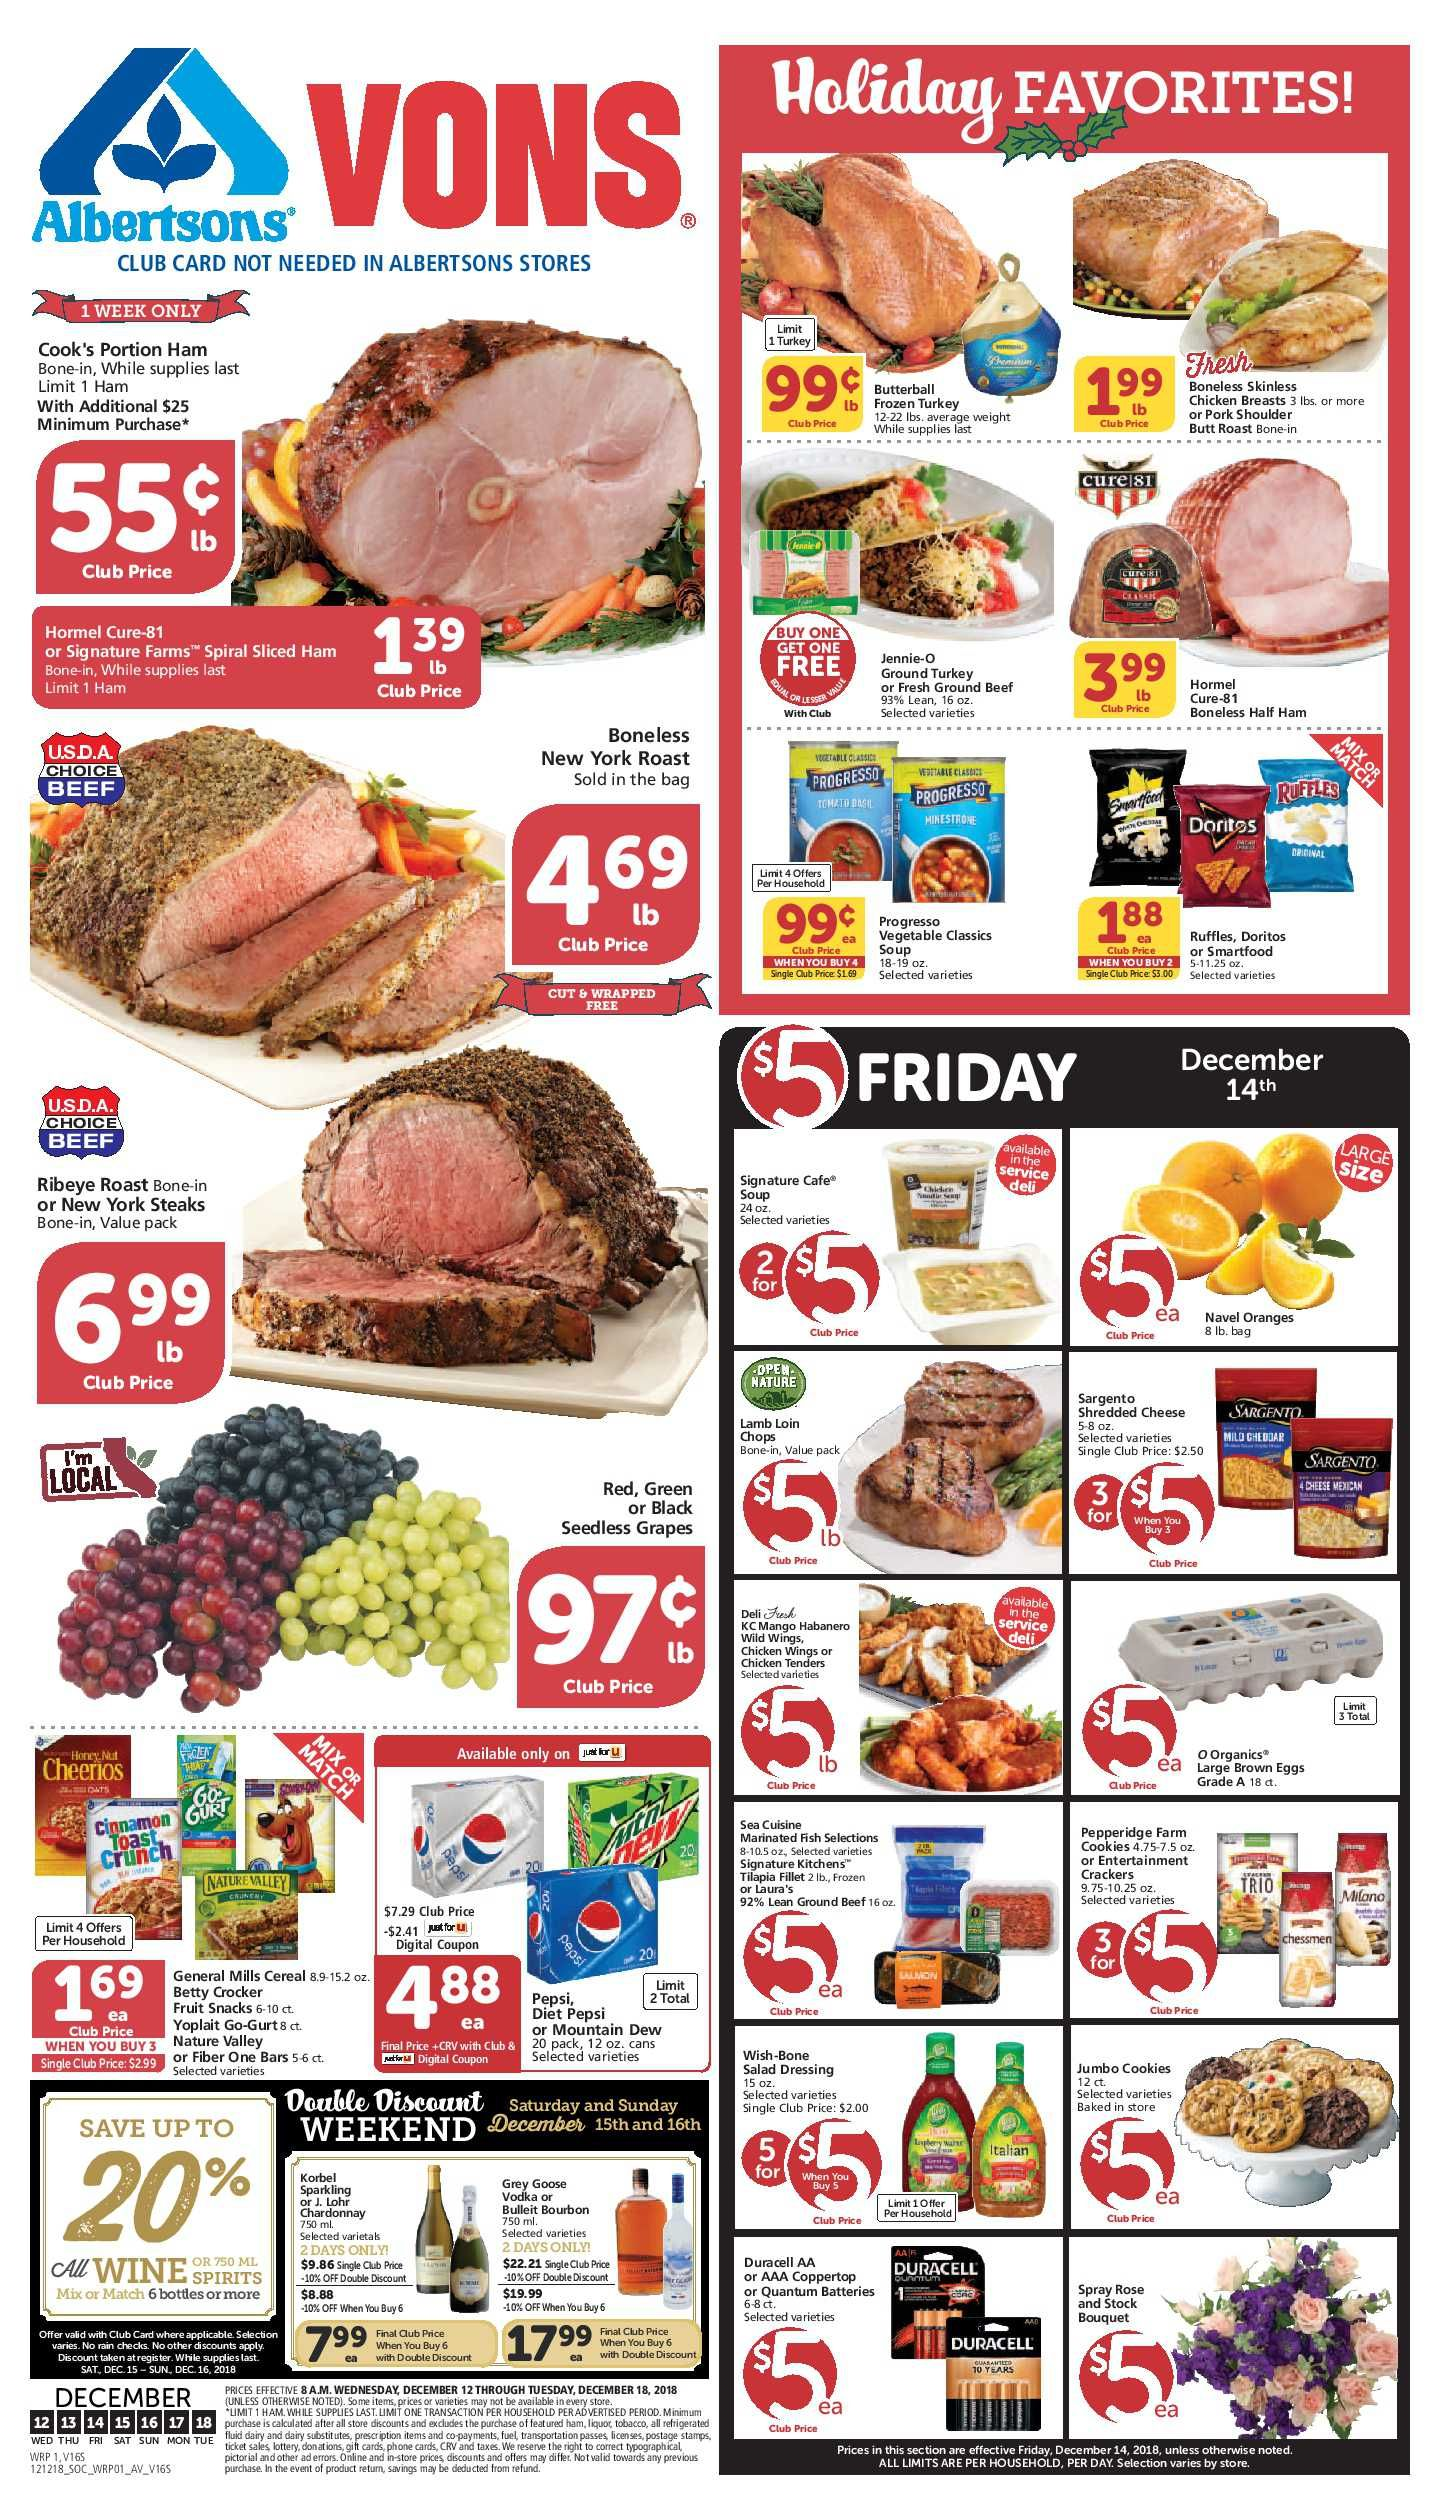 Vons Weekly Ad Flyer 02/26/20 03/03/20 Weekly ads